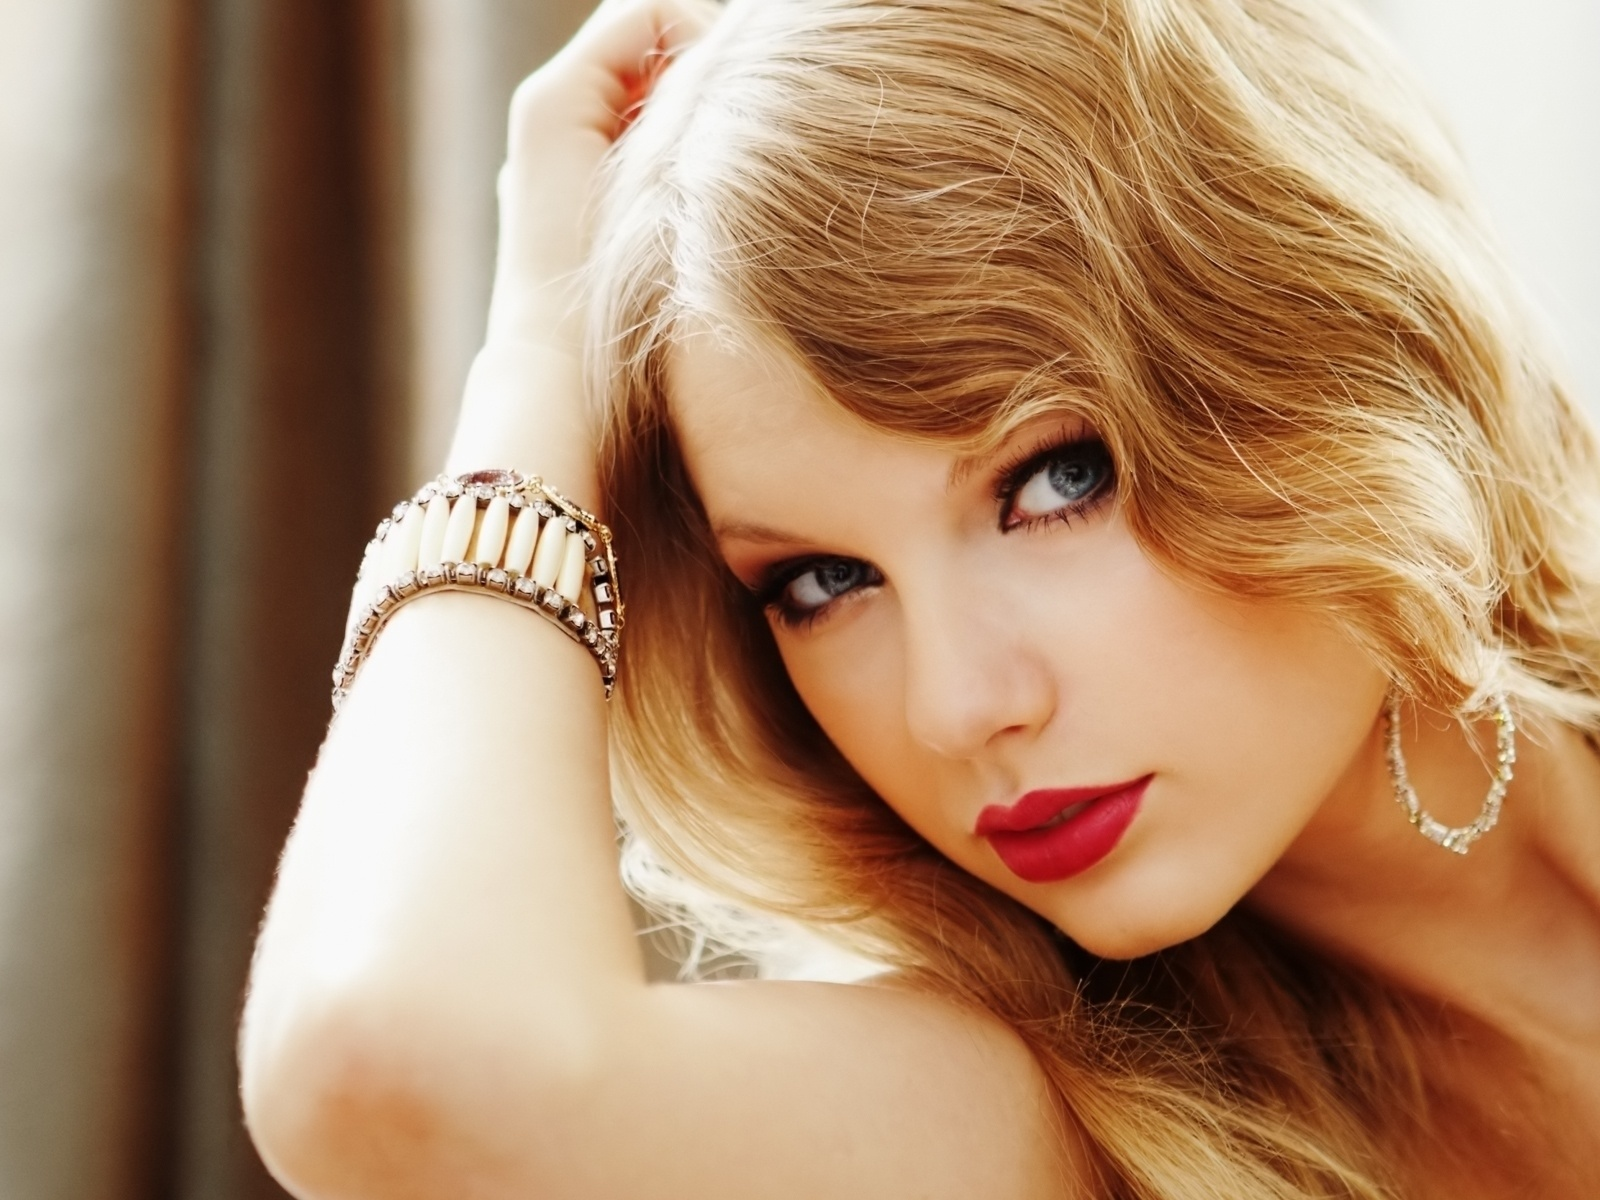 taylor-swift-hot-red-lipstick-taylor-swift-31650397-1600-1200